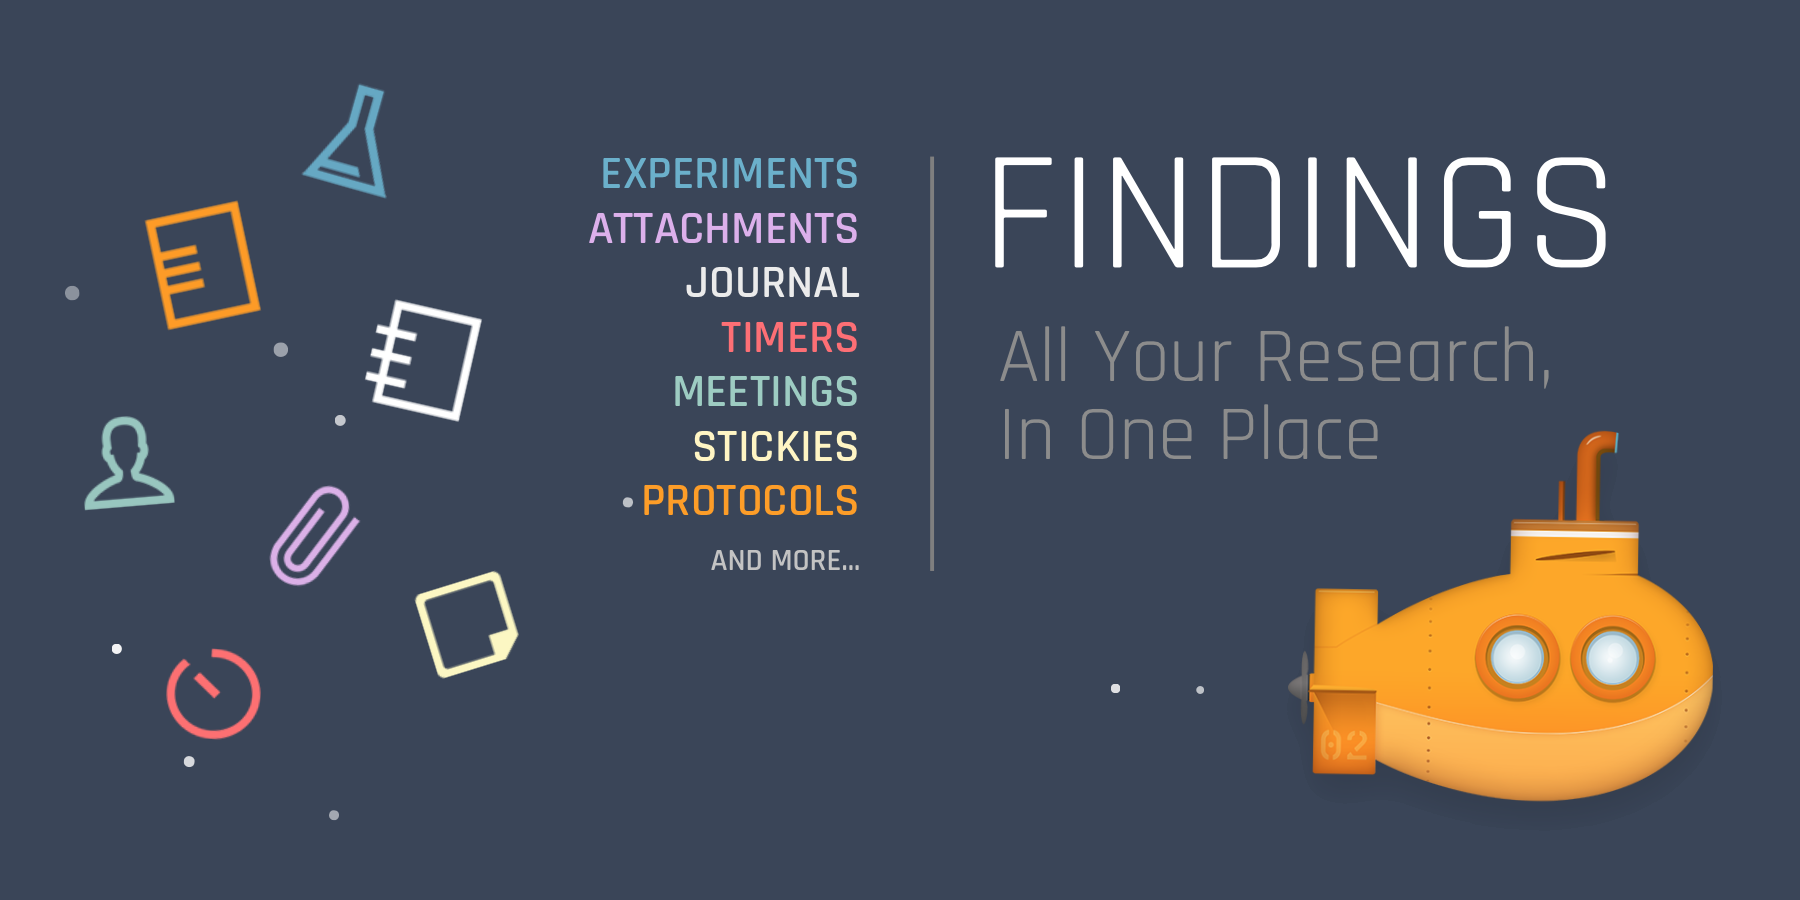 Findings - All Your Research, In One App